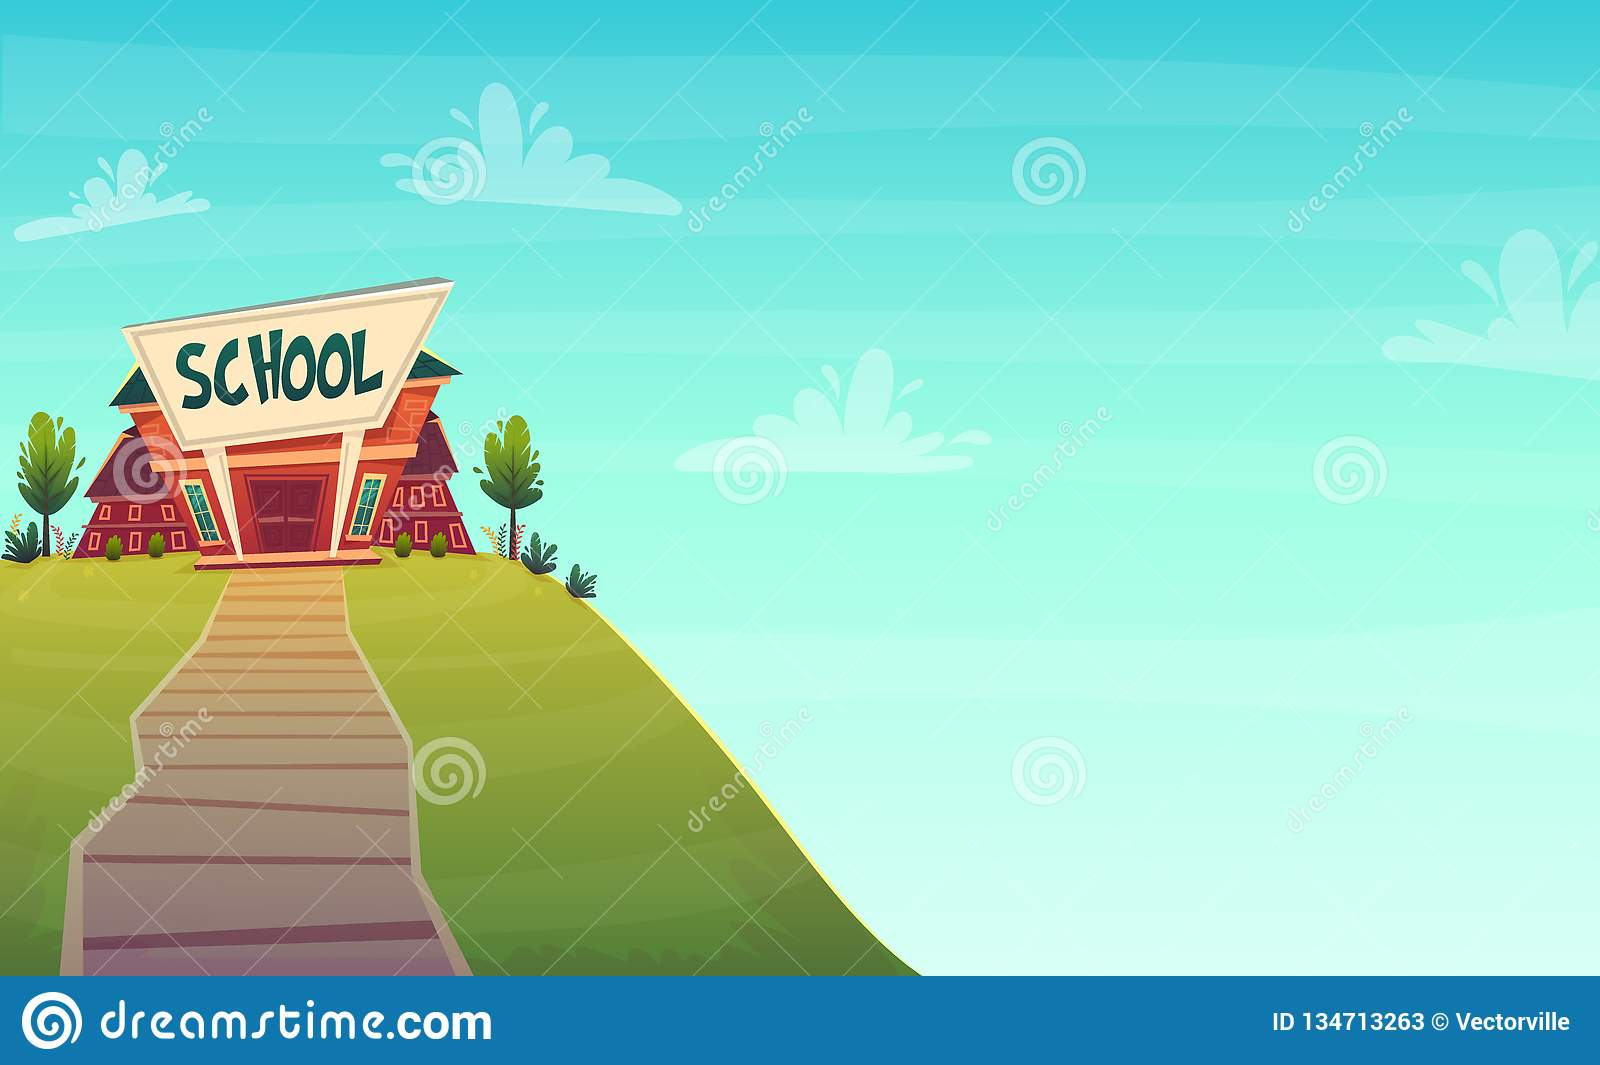 cartoon school background wallpaper place for text sign funny